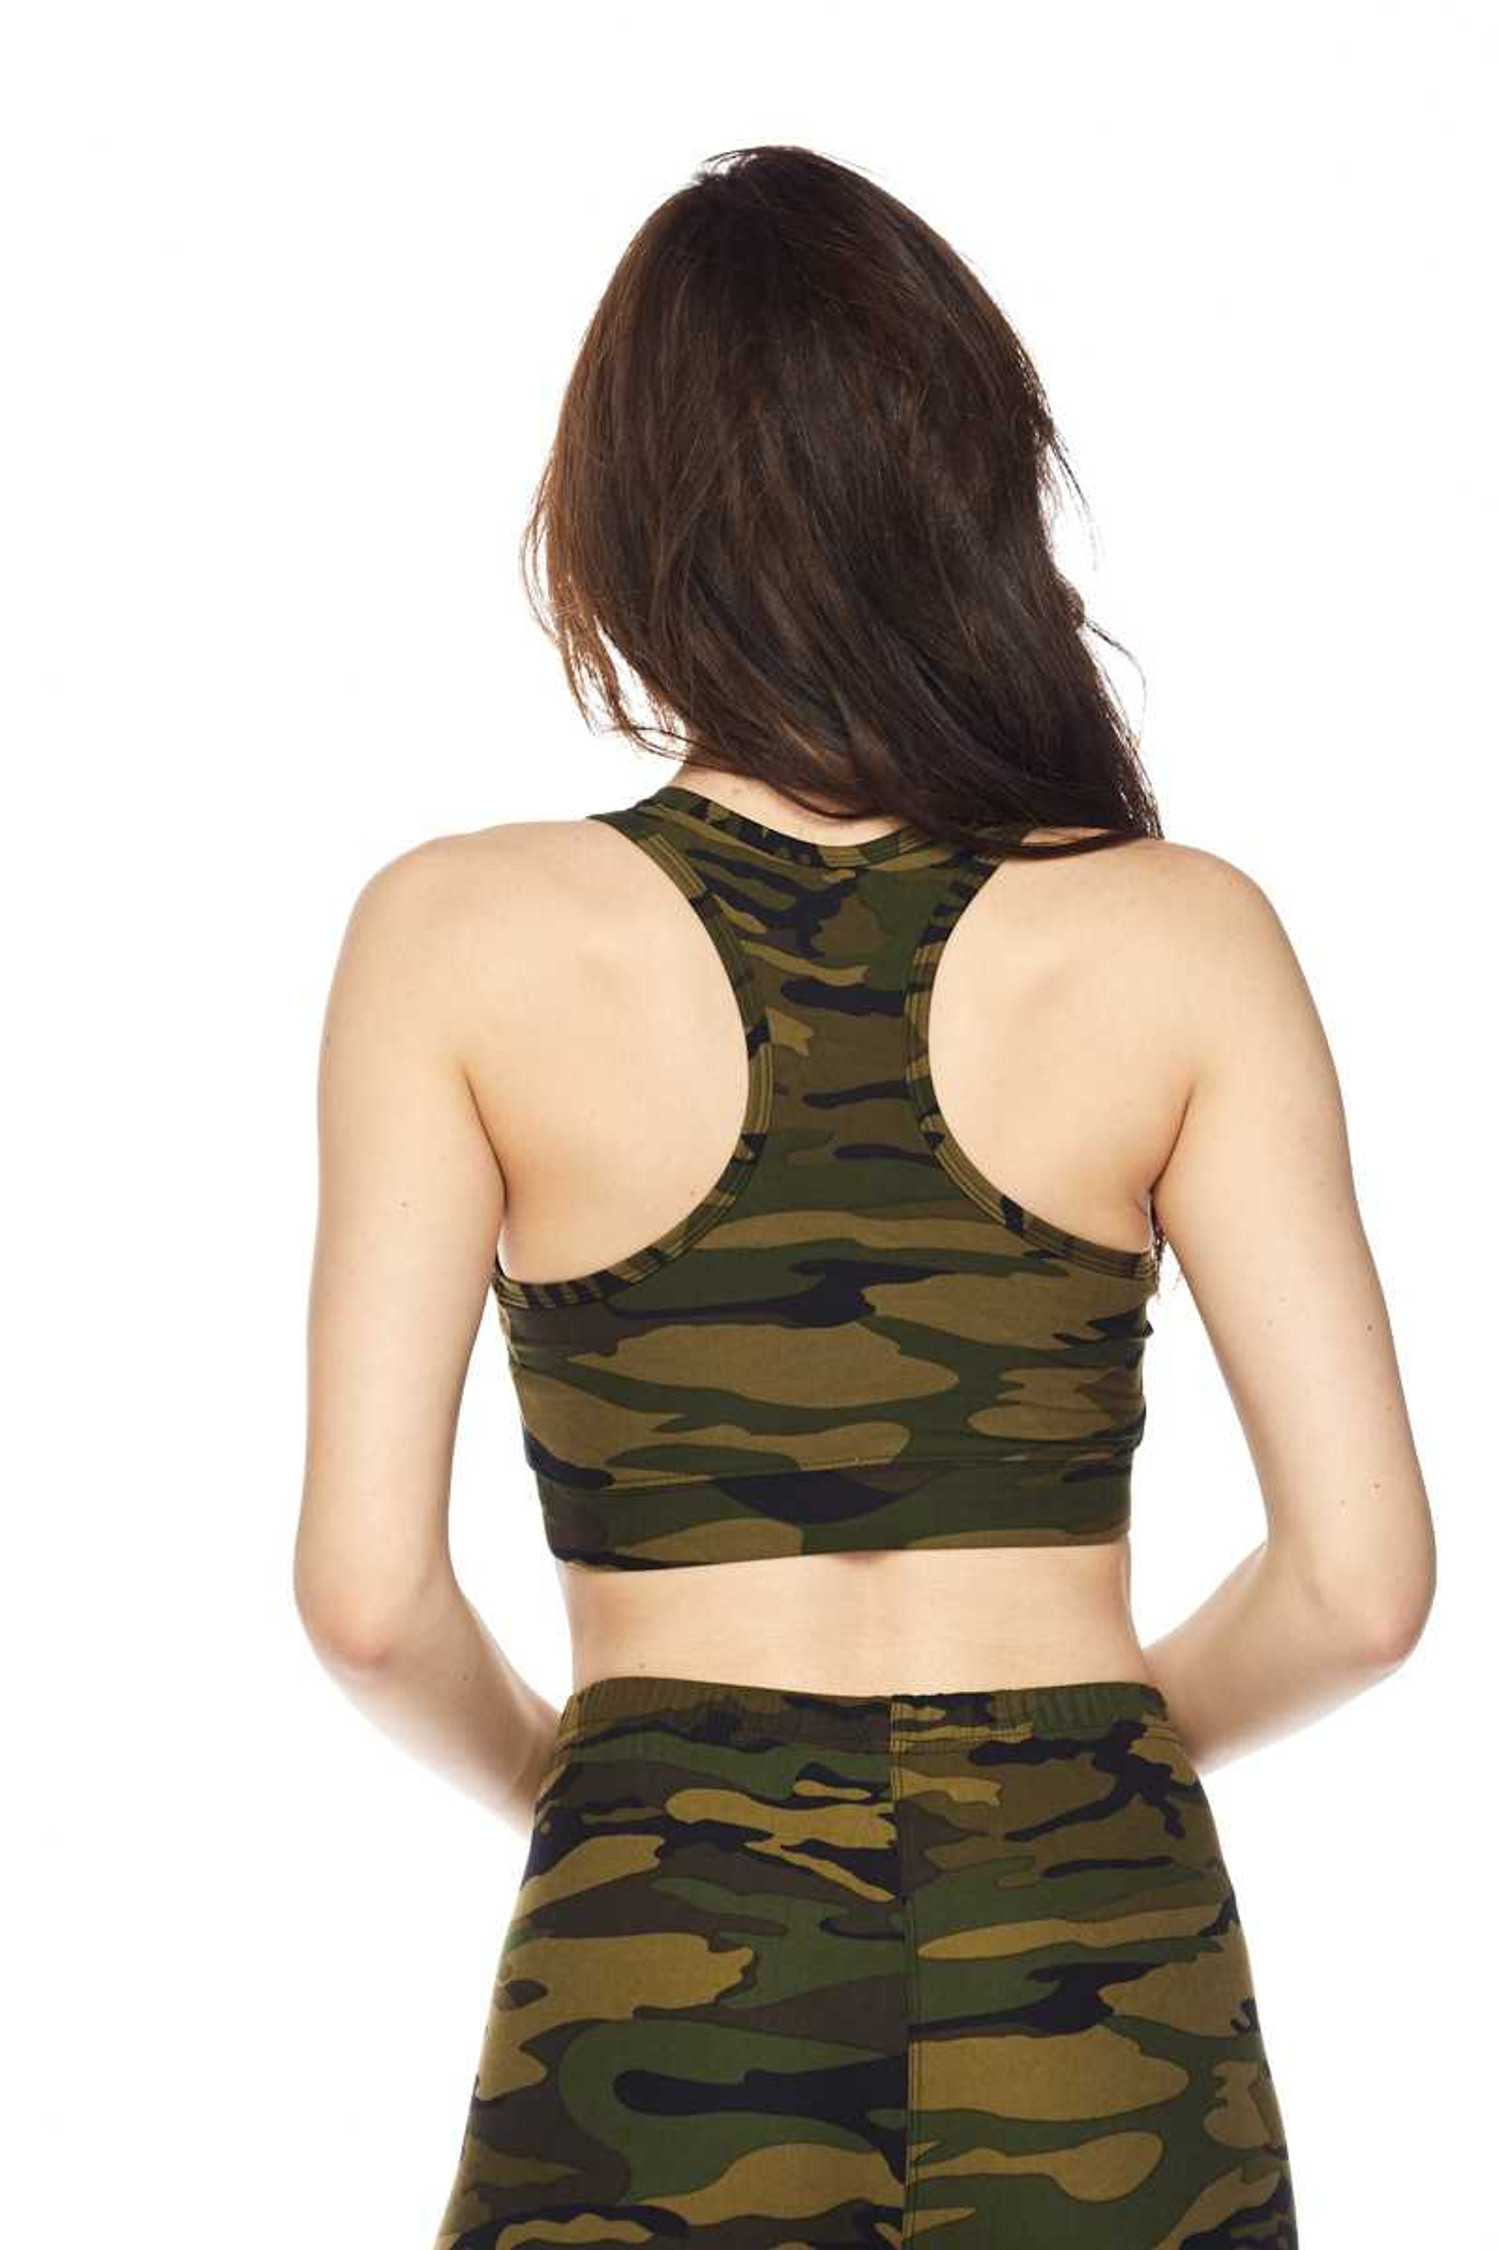 Brushed Green Camouflage Women's Bra Top Back